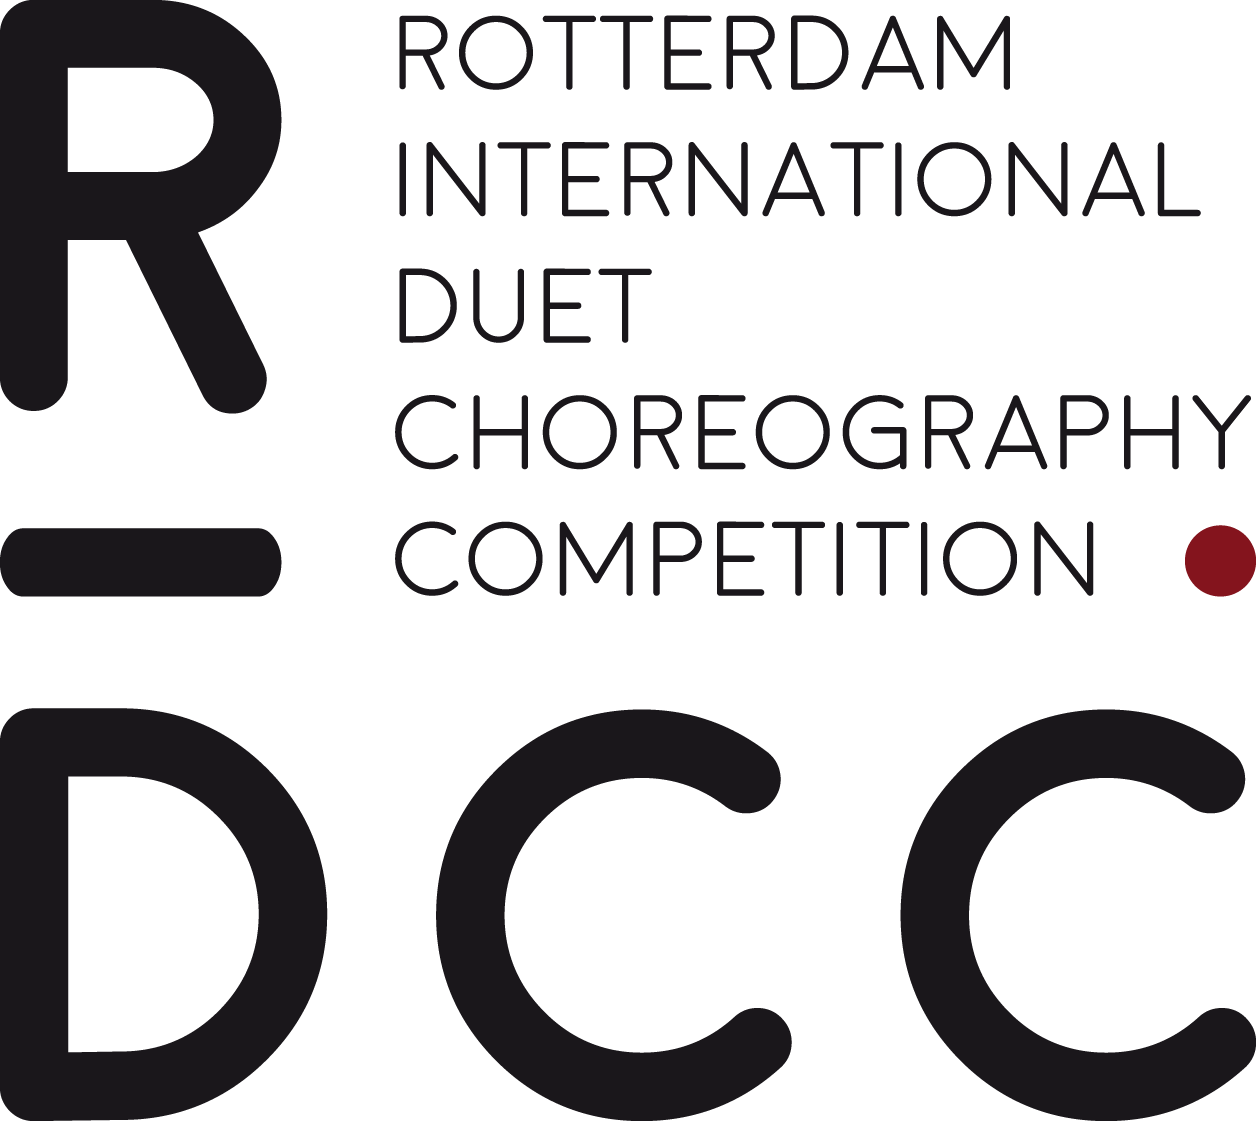 Rotterdam International Duet Choreography Competition